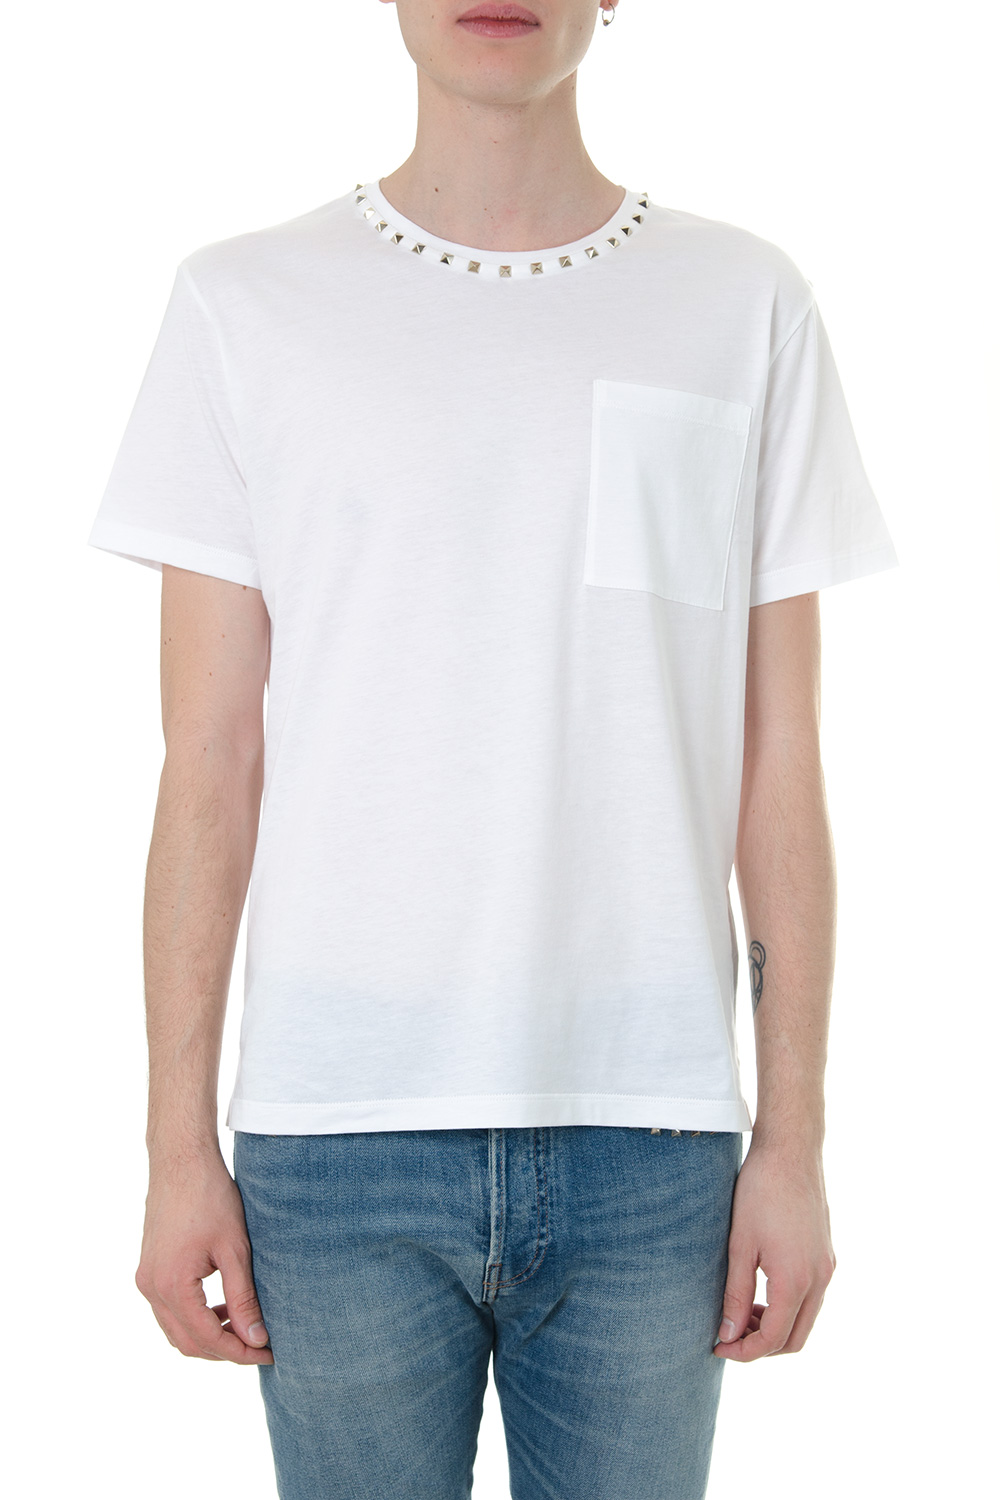 69868c913de4 WHITE COTTON T-SHIRT ROCKSTUD UNTITLED FW 2018 - VALENTINO - Boutique  Galiano